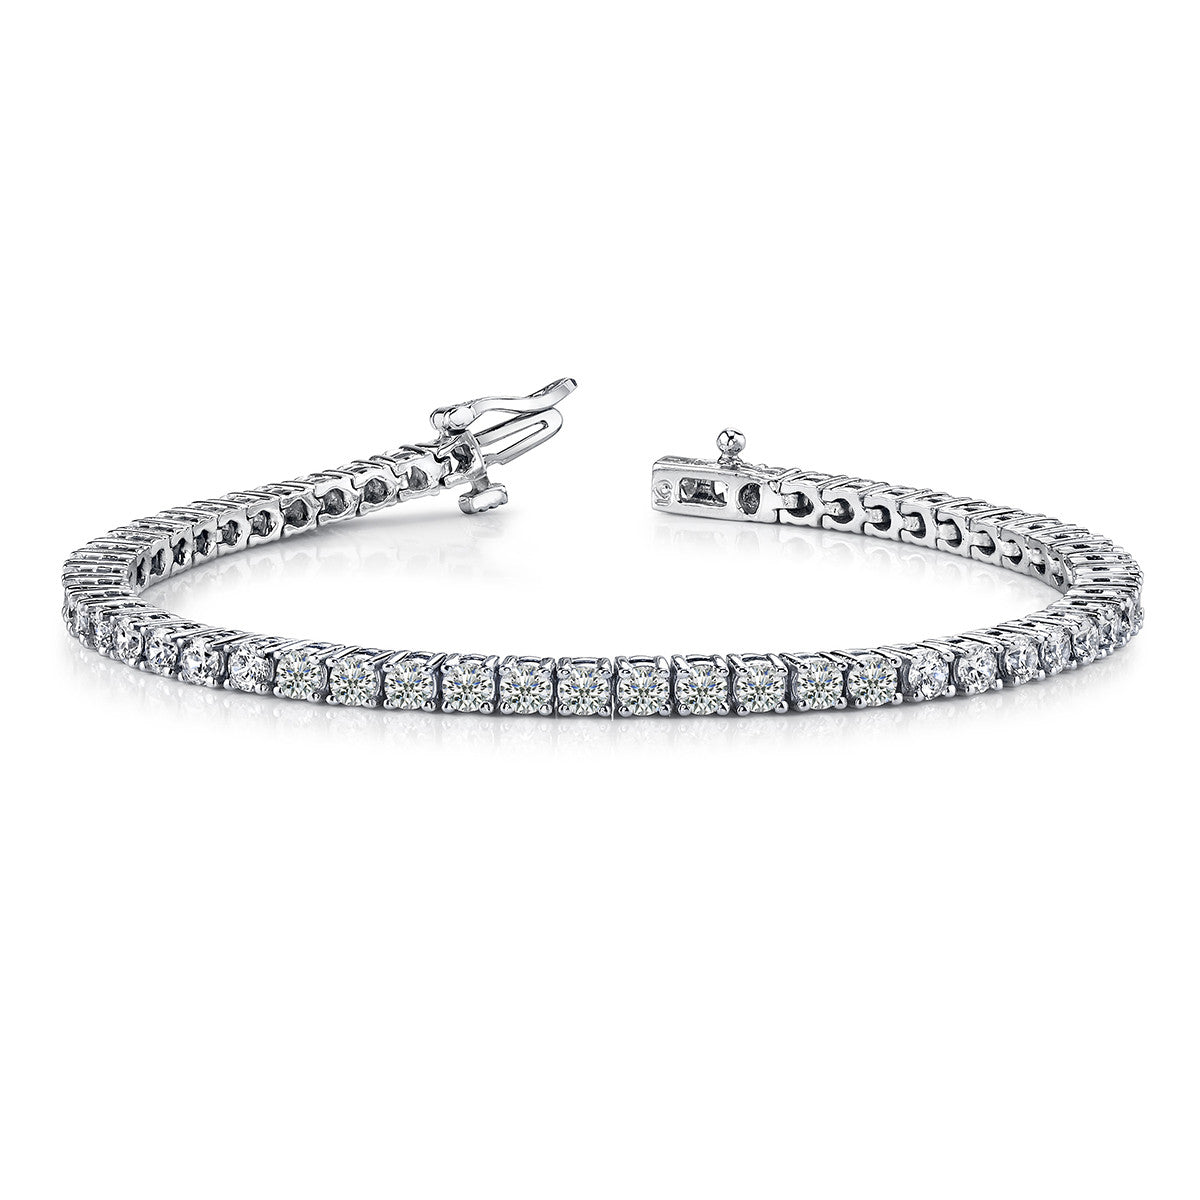 4 Carat Round 14K White Gold 4 Prong Diamond Tennis Bracelet (Signature Quality)